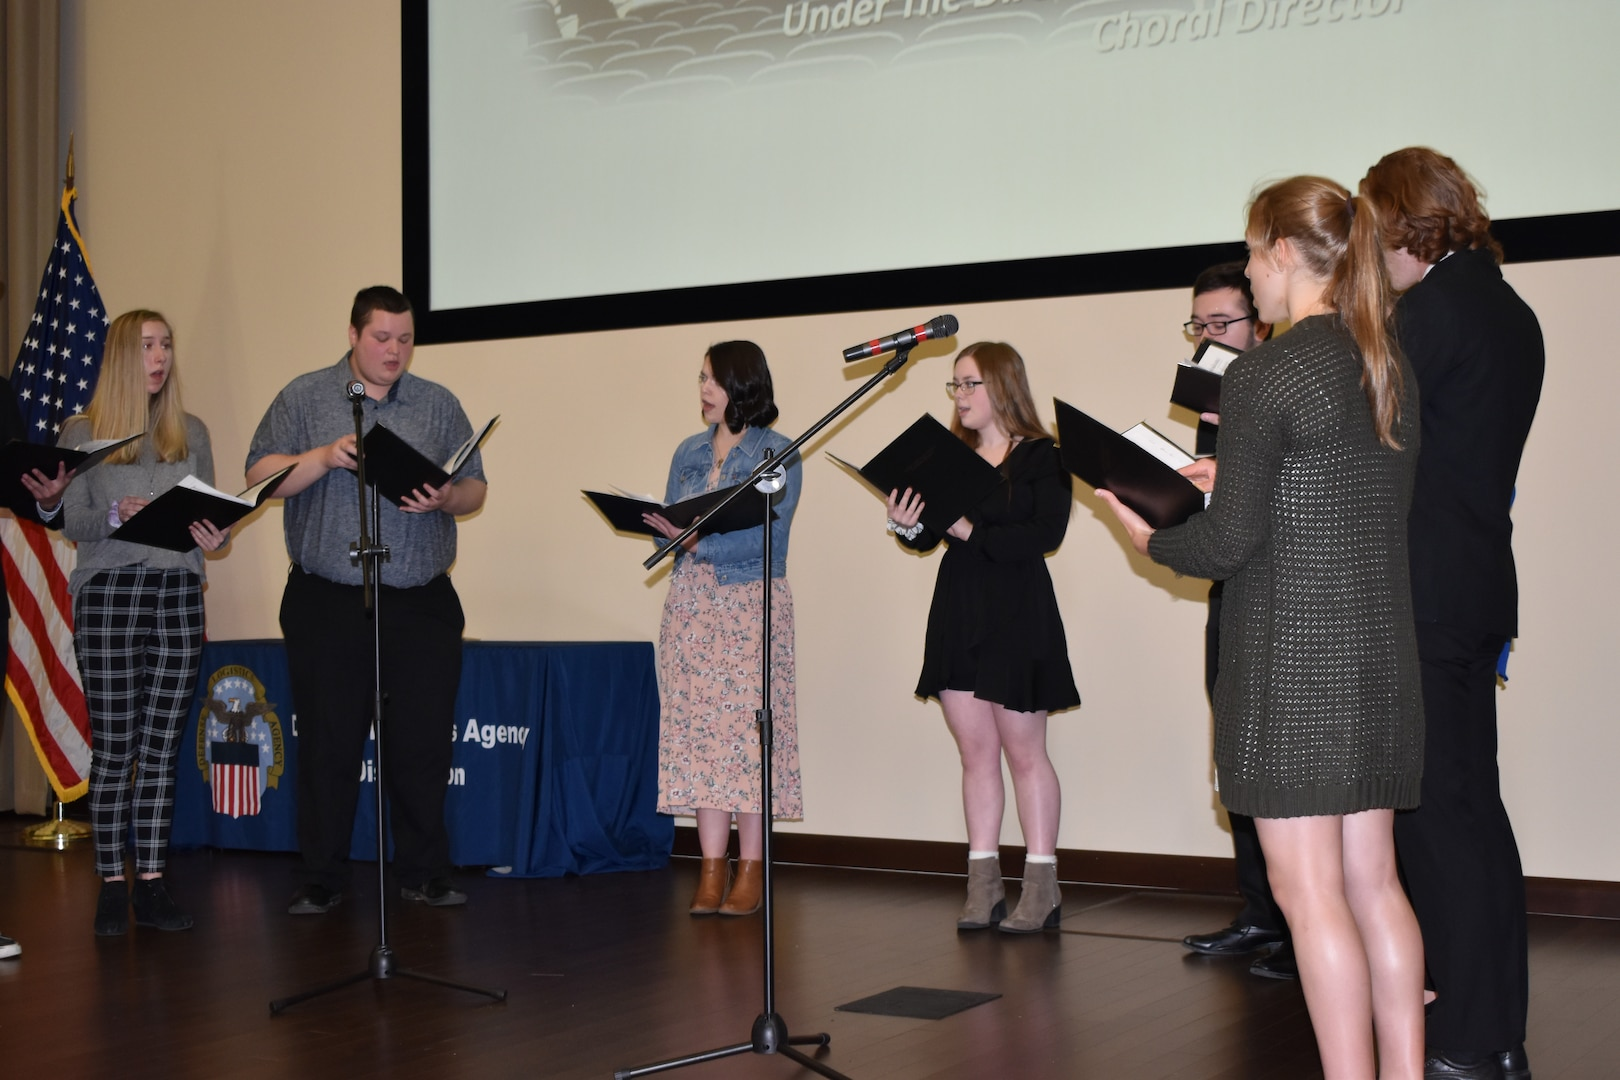 Distribution Multicultural committee hosts Holocaust Remembrance Day event